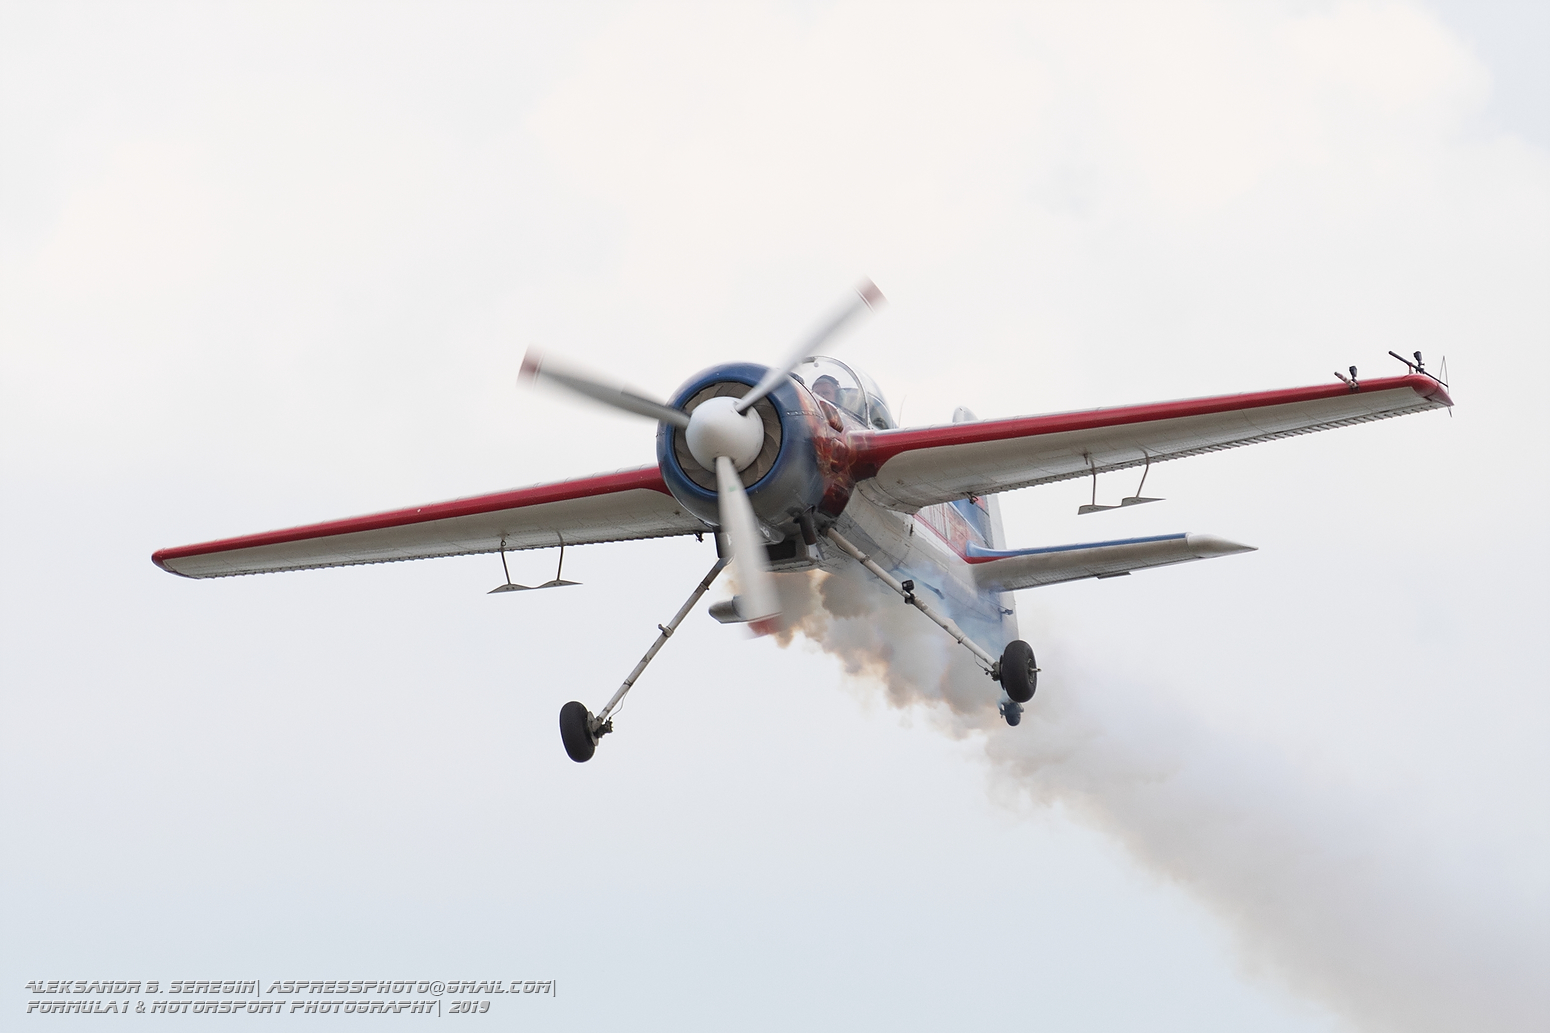 562.2019.Drakino.MO.Russian.Air.Race.June.ASppaImages.COM